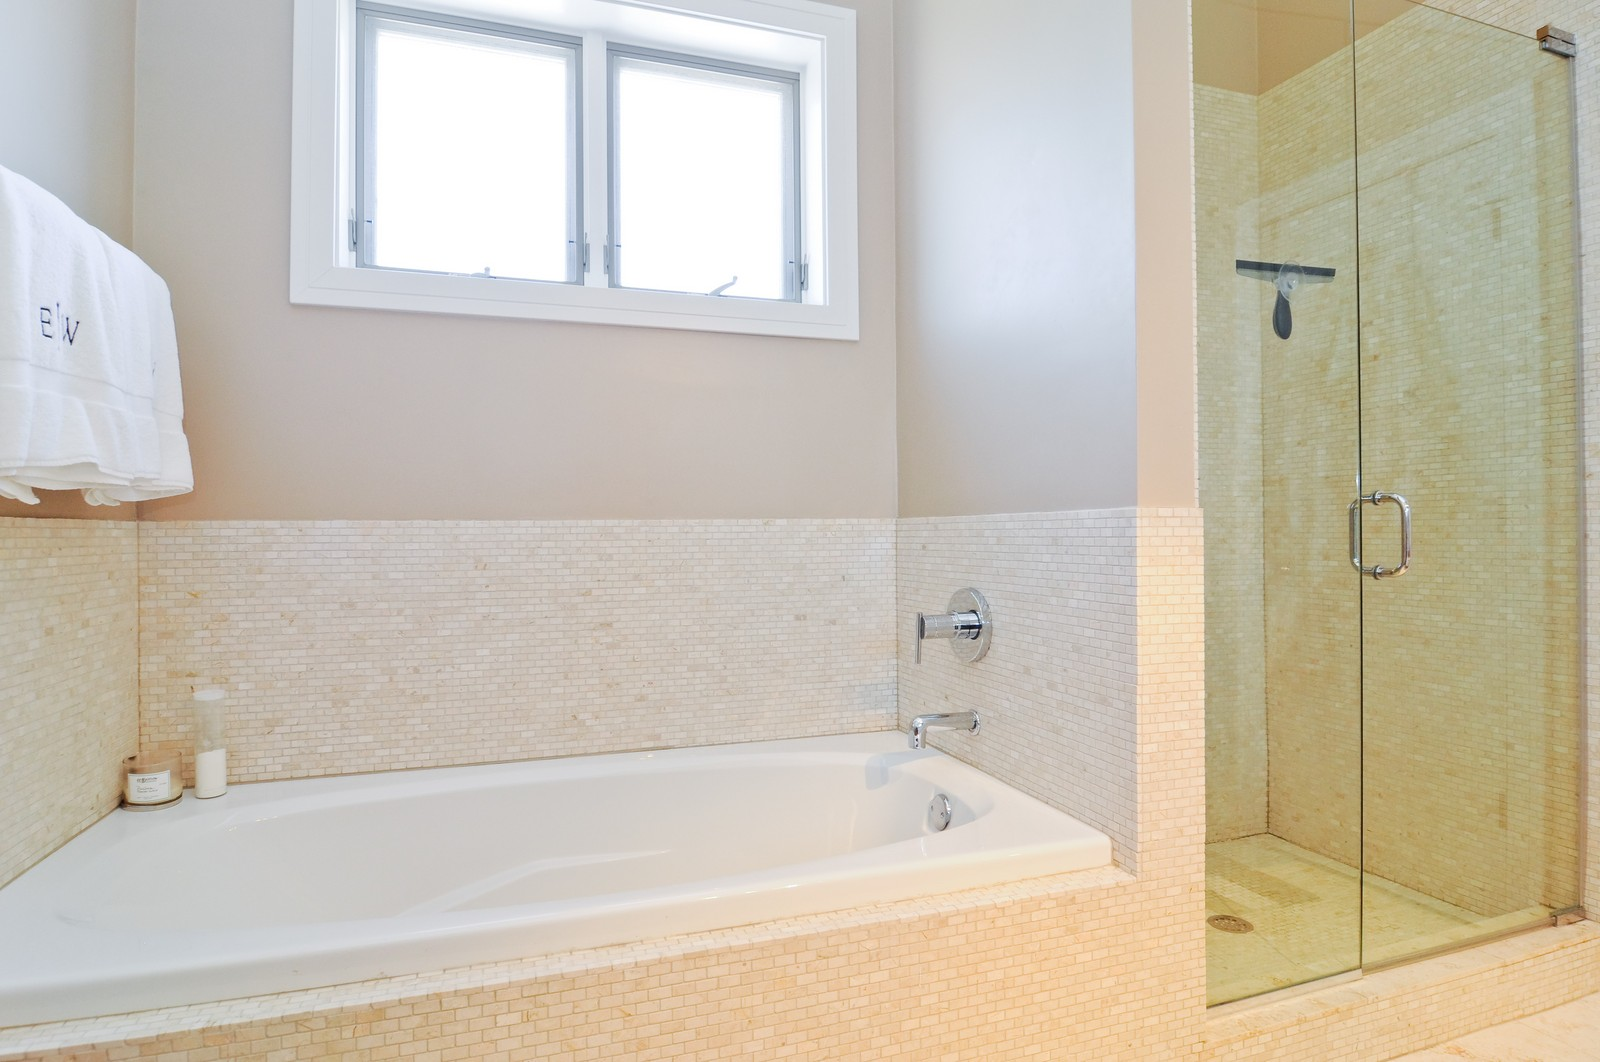 Real Estate Photography - 950 W. Cullerton, C, Chicago, IL, 60608 - Master Bathroom